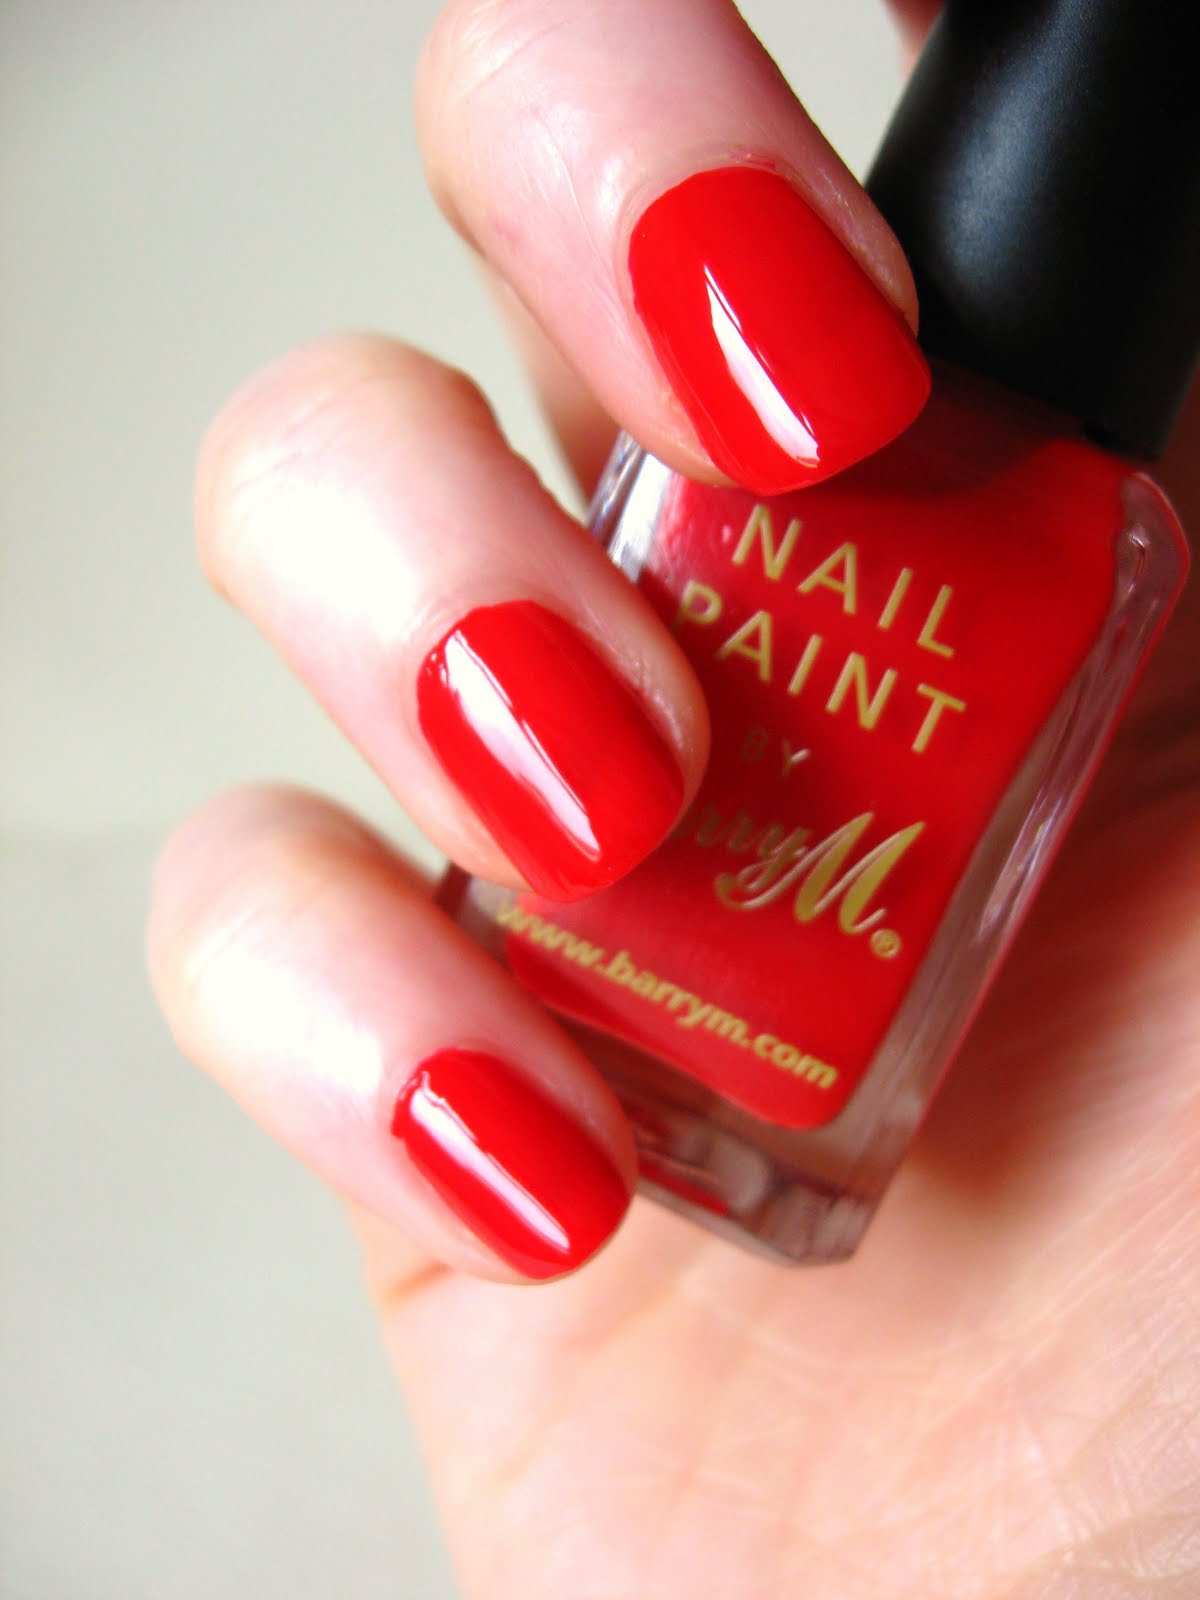 NOTD - Barry M Bright Red | Makeup Savvy - makeup and beauty blog